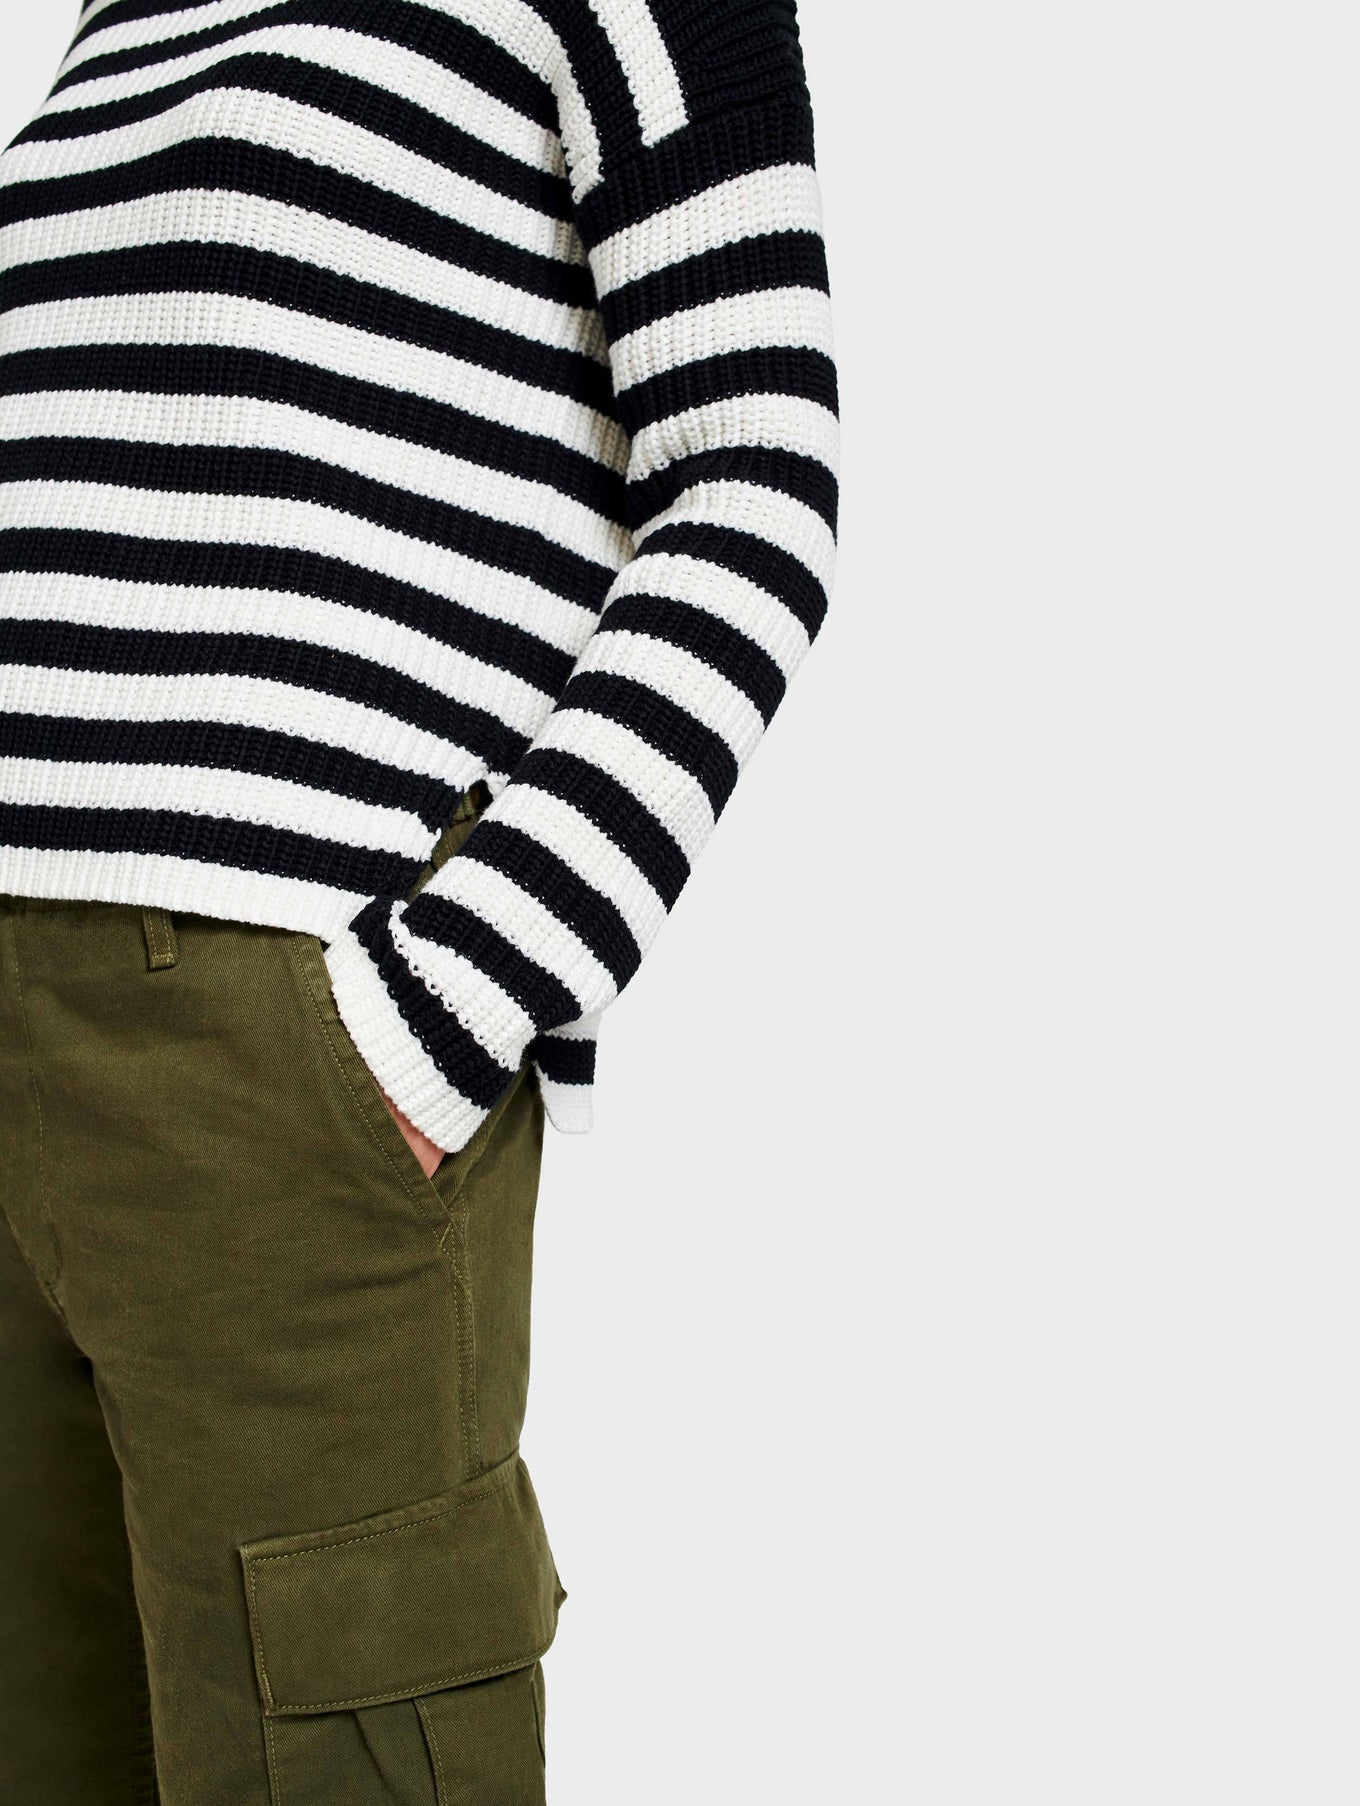 Cotton Rib Mockneck - Black/Ivory Stripe - Image 4